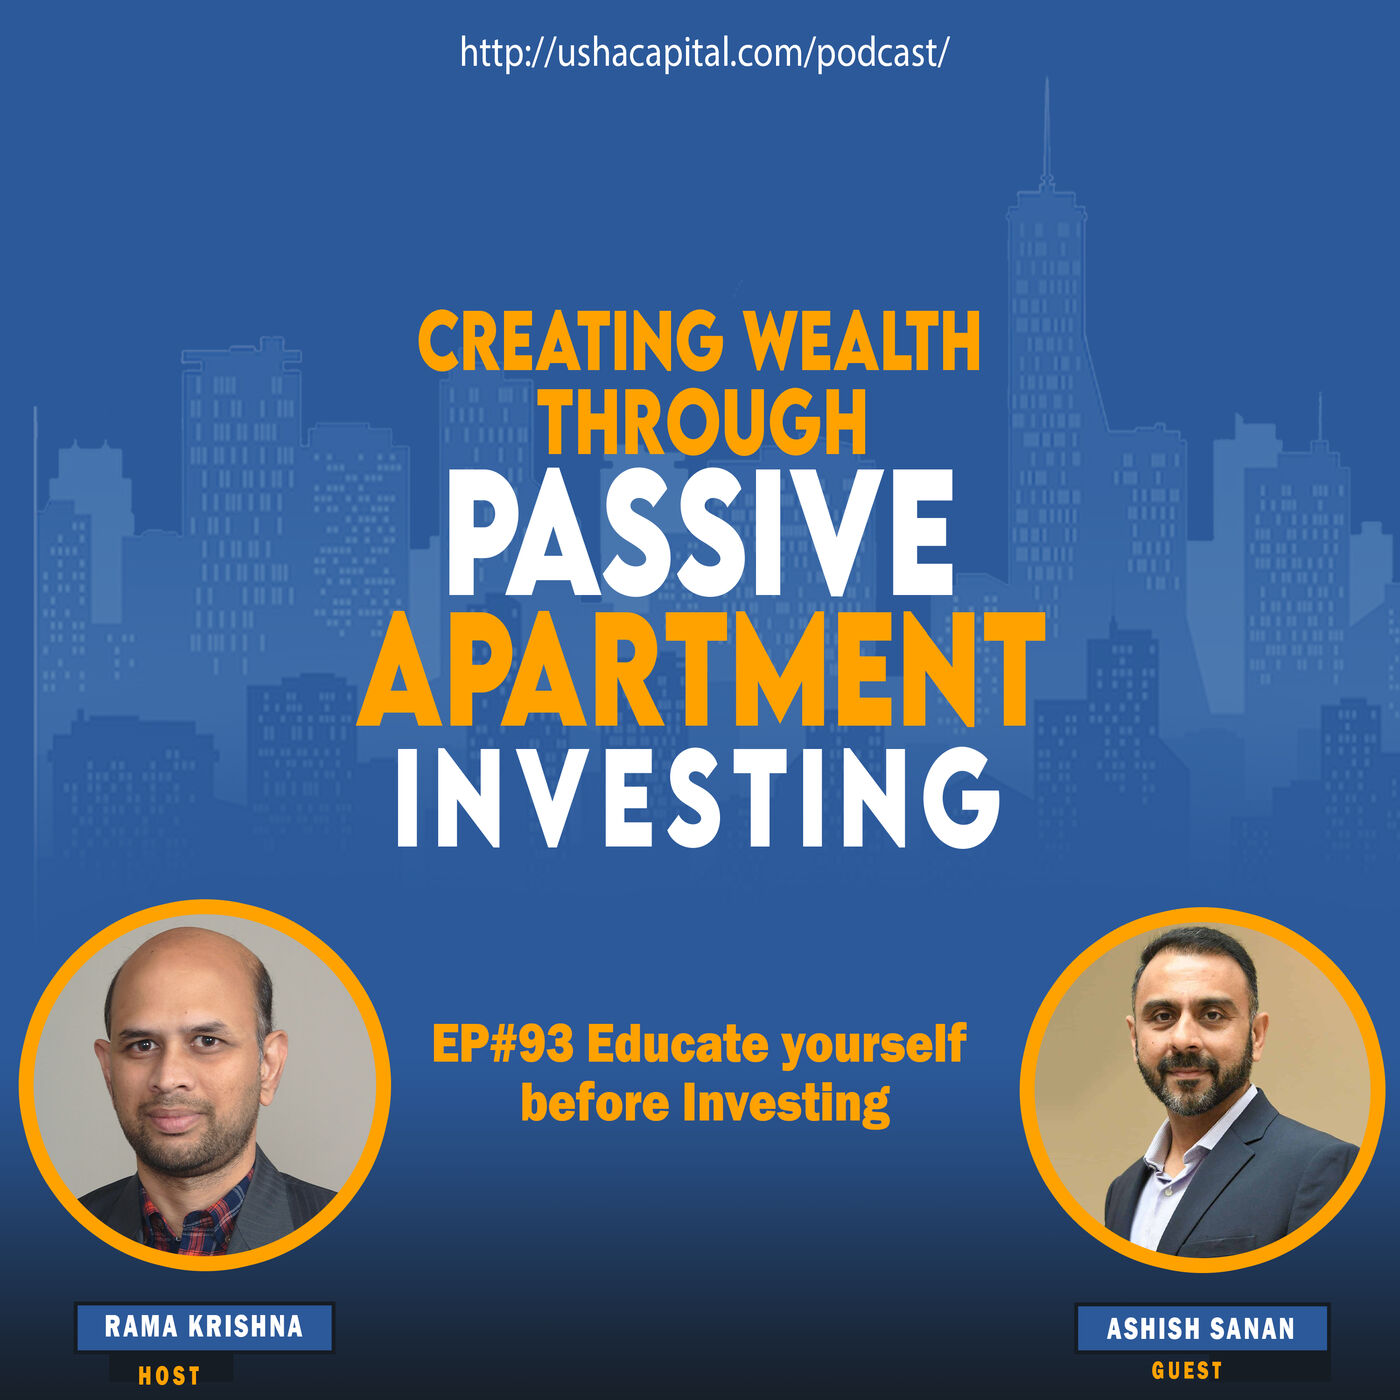 EP#93 Educate yourself before Investing with Ashish Sanan